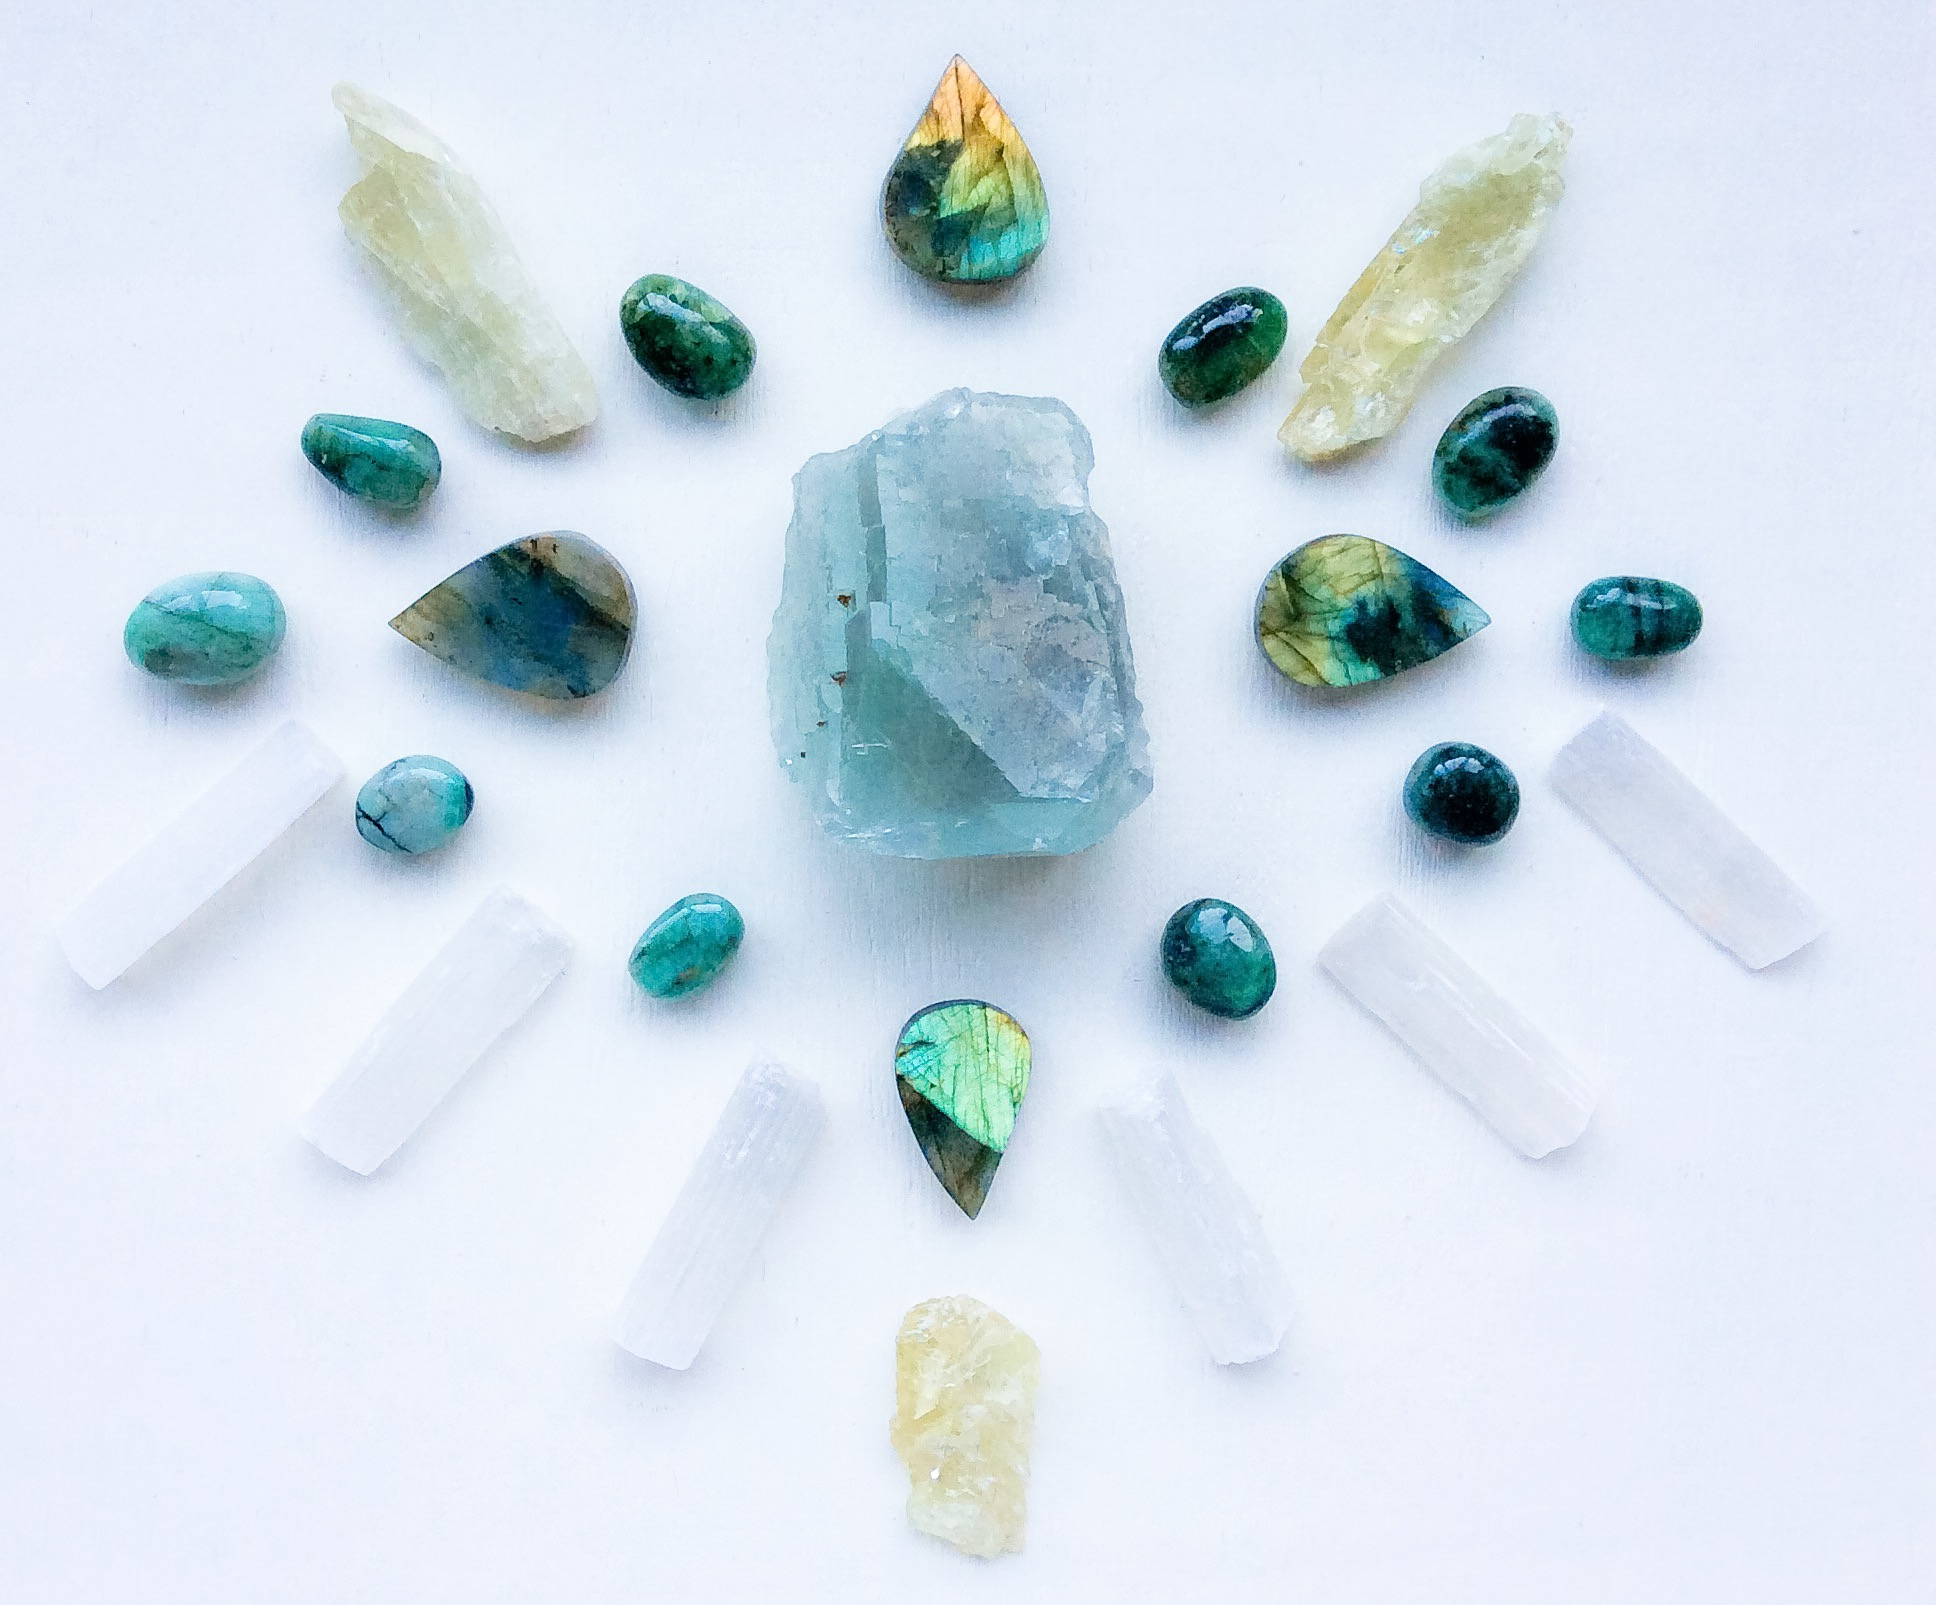 Blue Fluorite, Labradorite, Hiddenite, Emerald and Selenite